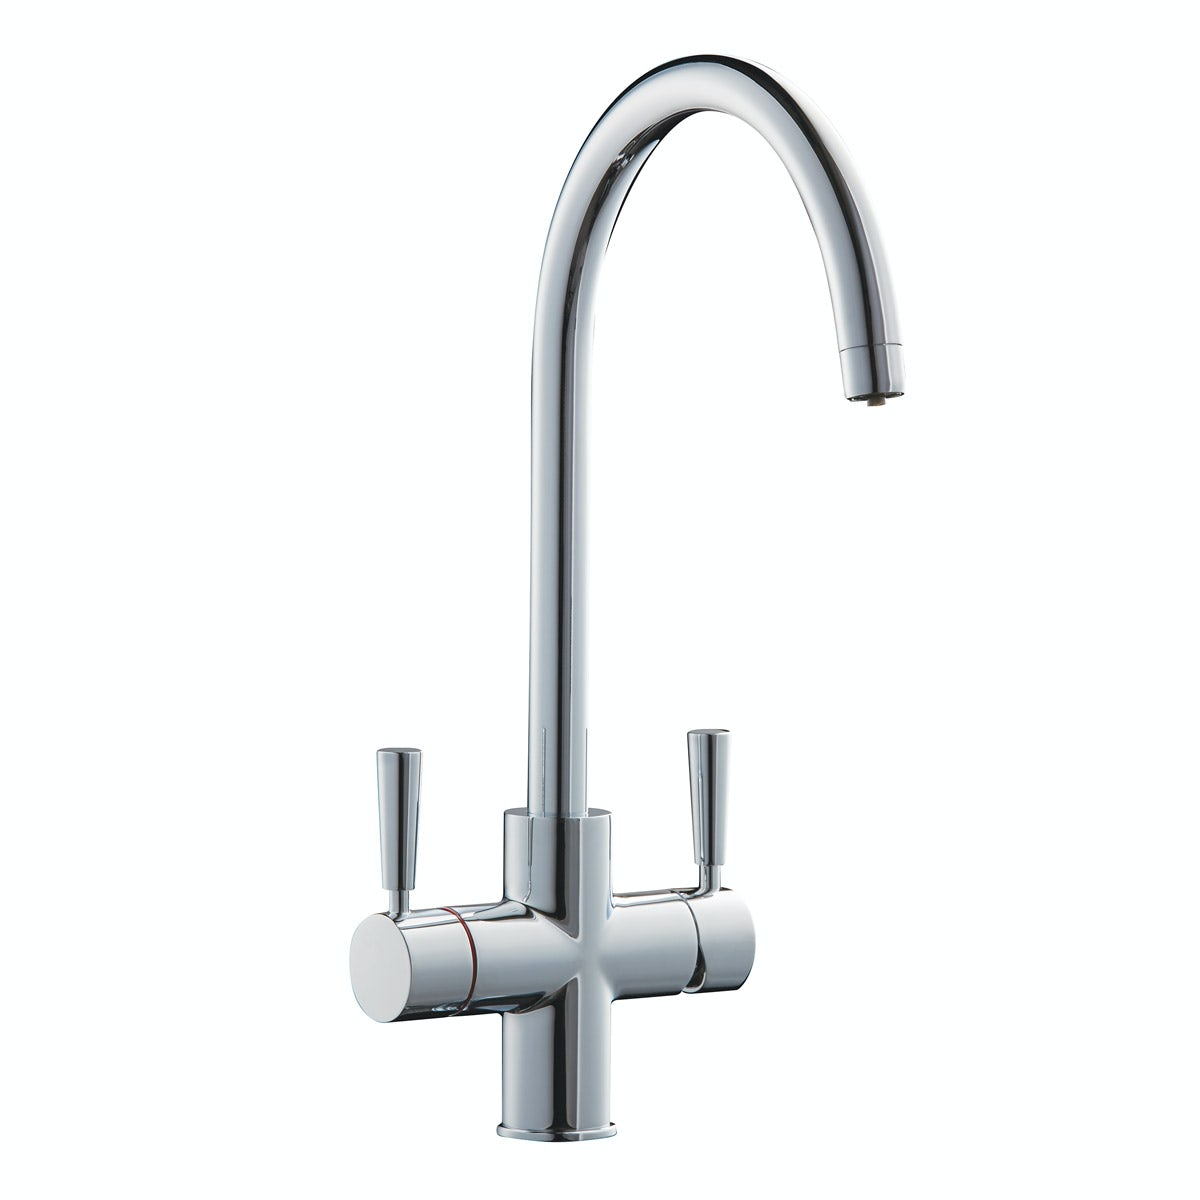 Redring Reditap 3 in 1 boiling water tap